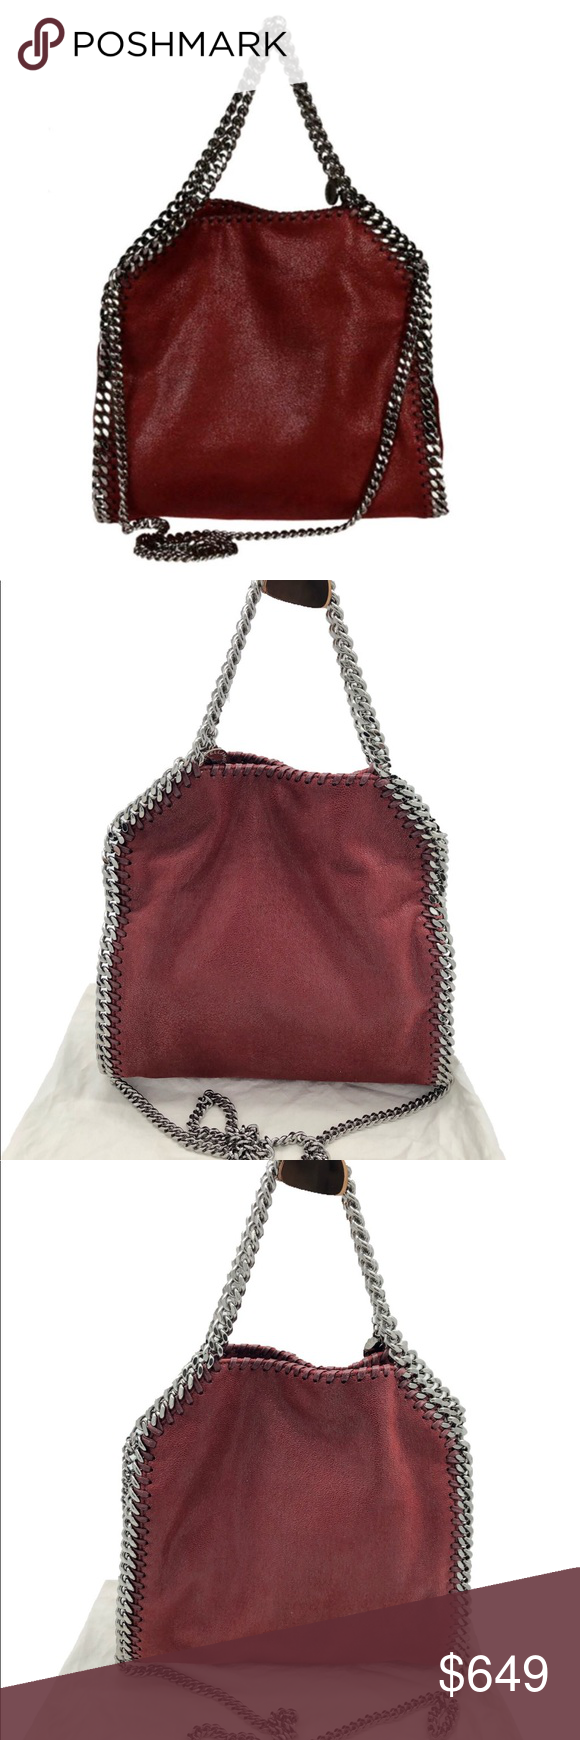 83e211aa818 Stella Mccartney Mini Falabella Foldover Crossbody This softly structured  tote features gleaming chain edging, top